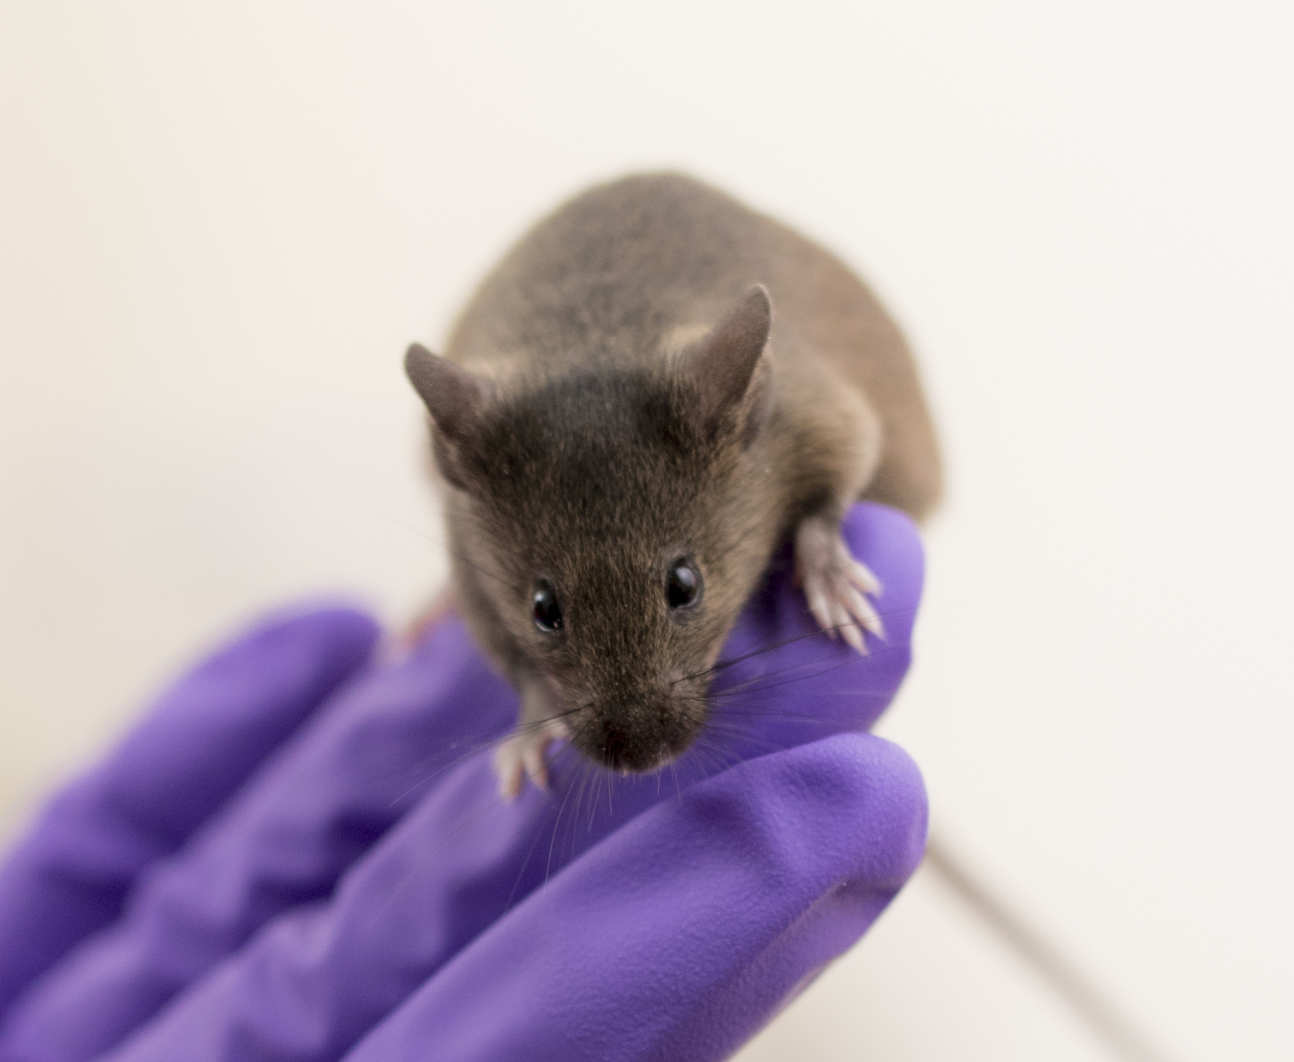 A mouse on a gloved hand